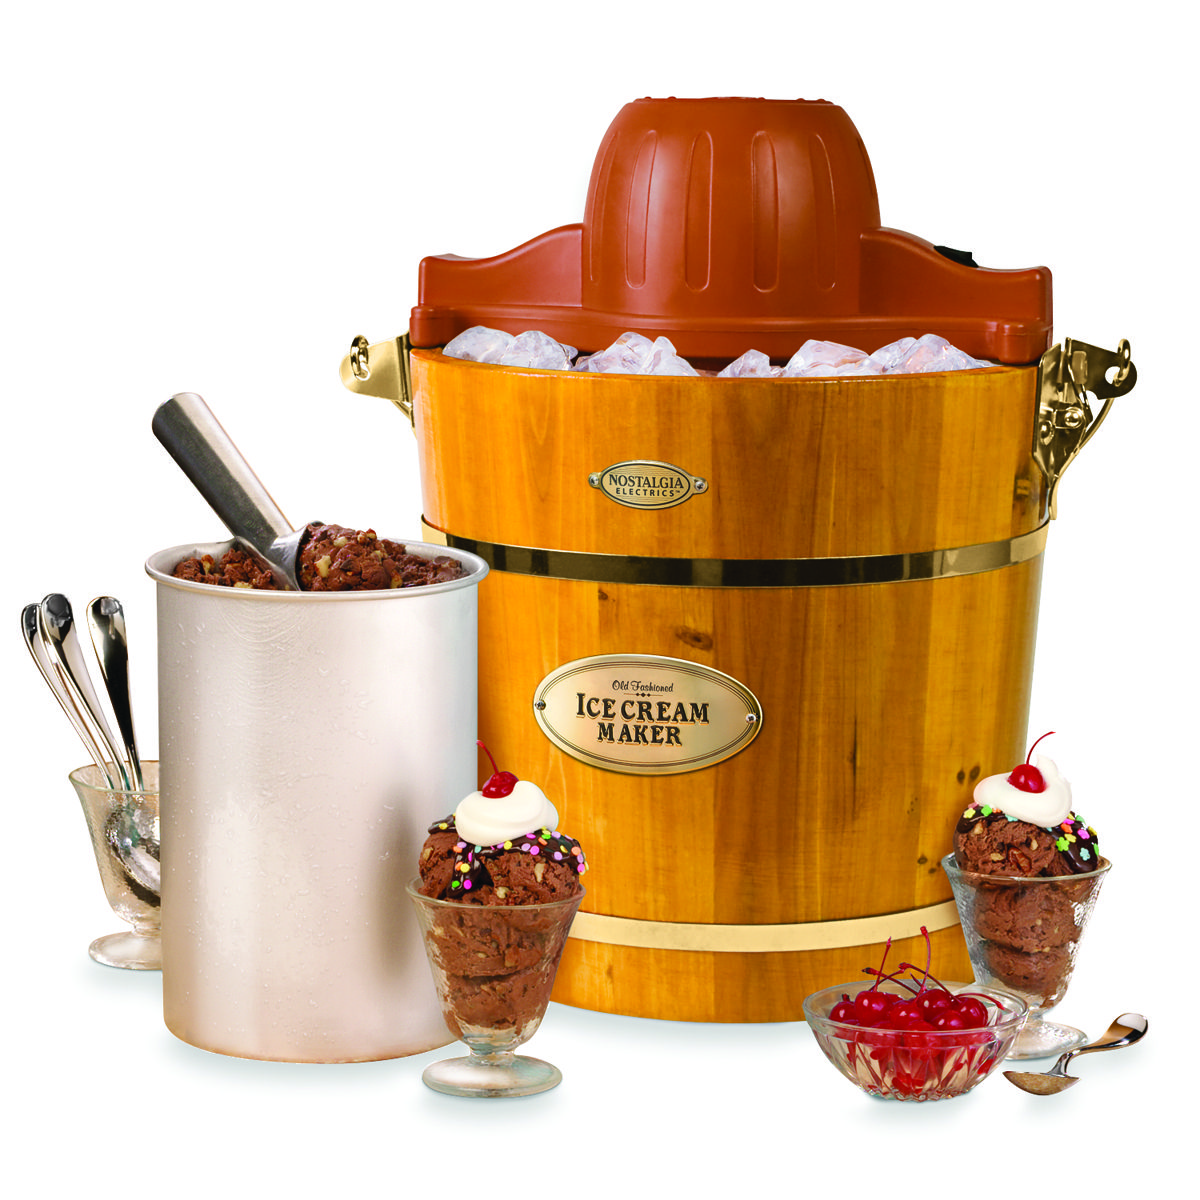 Accesorios De Cocina Originales Old School Ice Cream Maker Mmm Wish List Pinterest